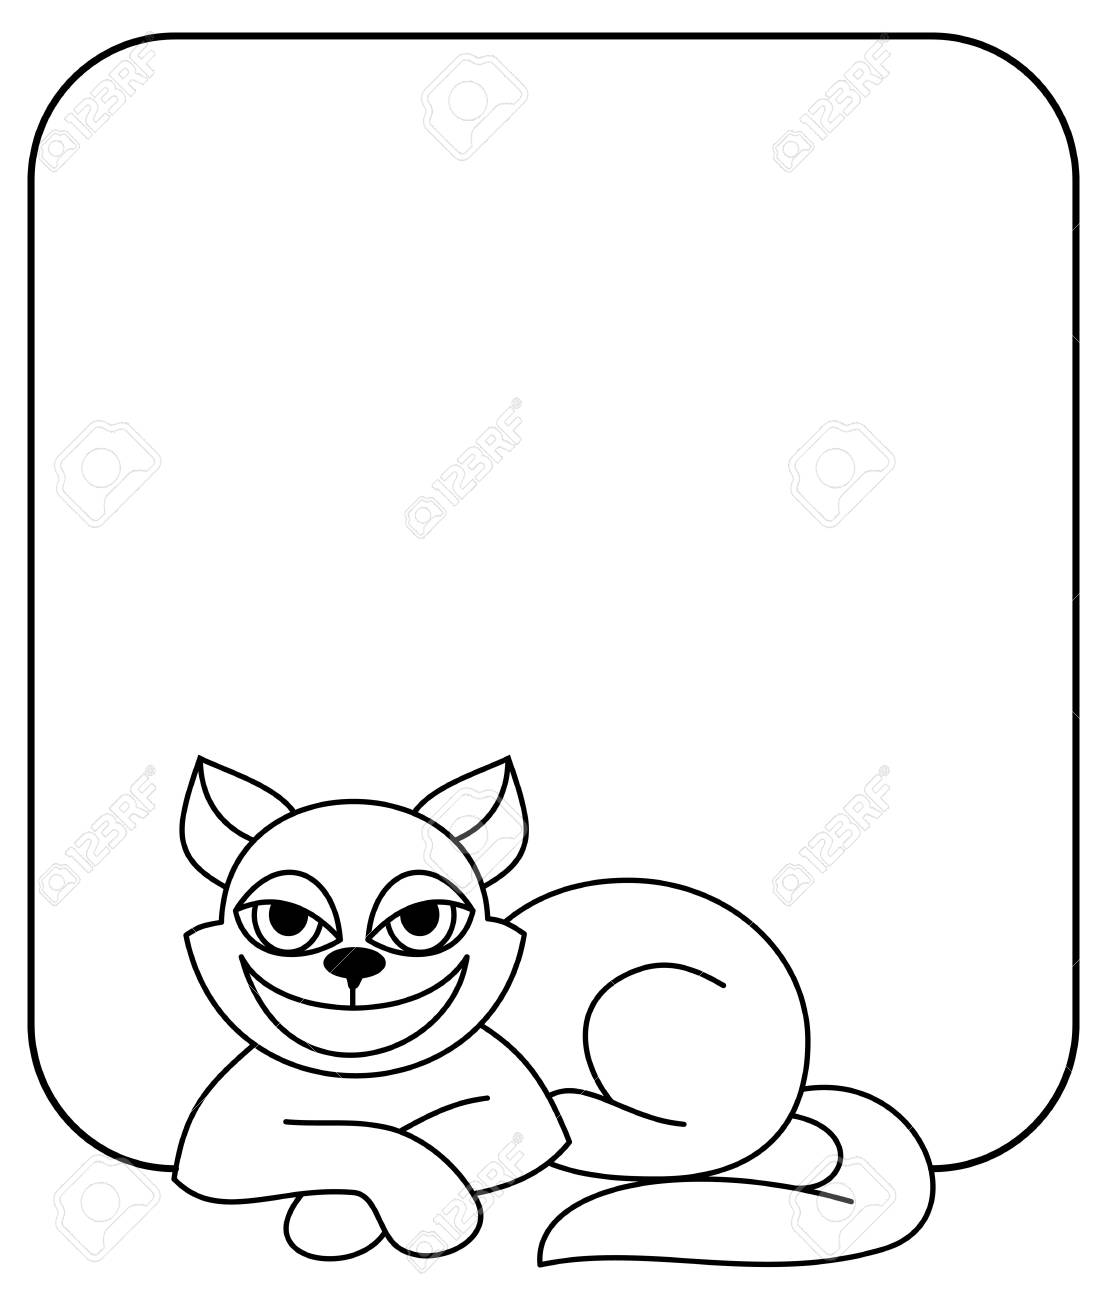 Outline Frame With Cat. Vector Clip Art Royalty Free Cliparts ...